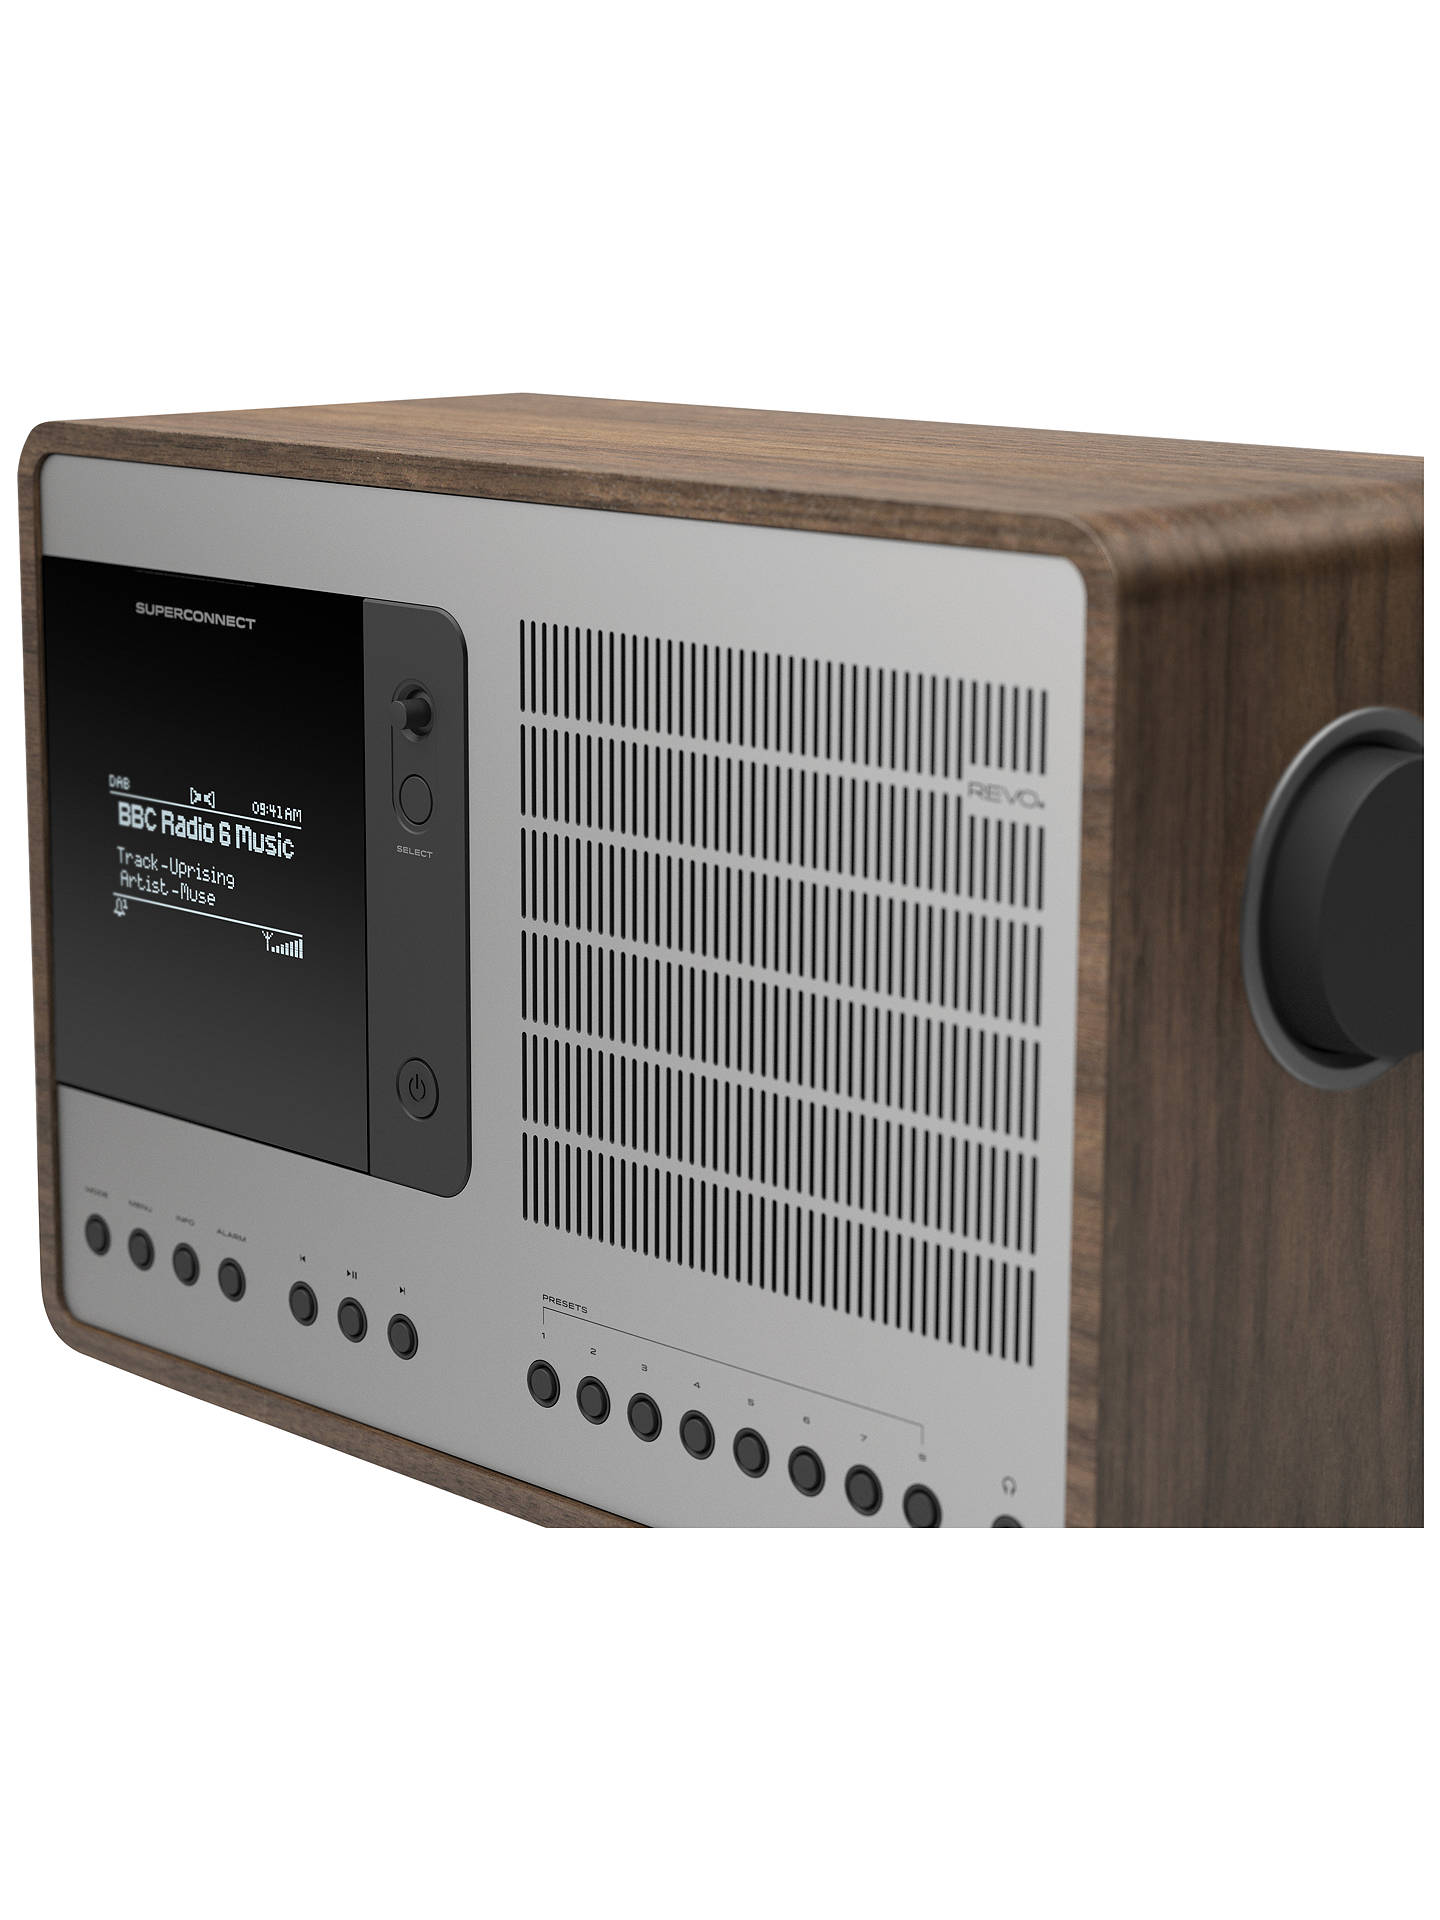 Revo SuperConnect DAB, FM & Internet Radio with Spotify, DLNA and  Bluetooth, Walnut/Silver